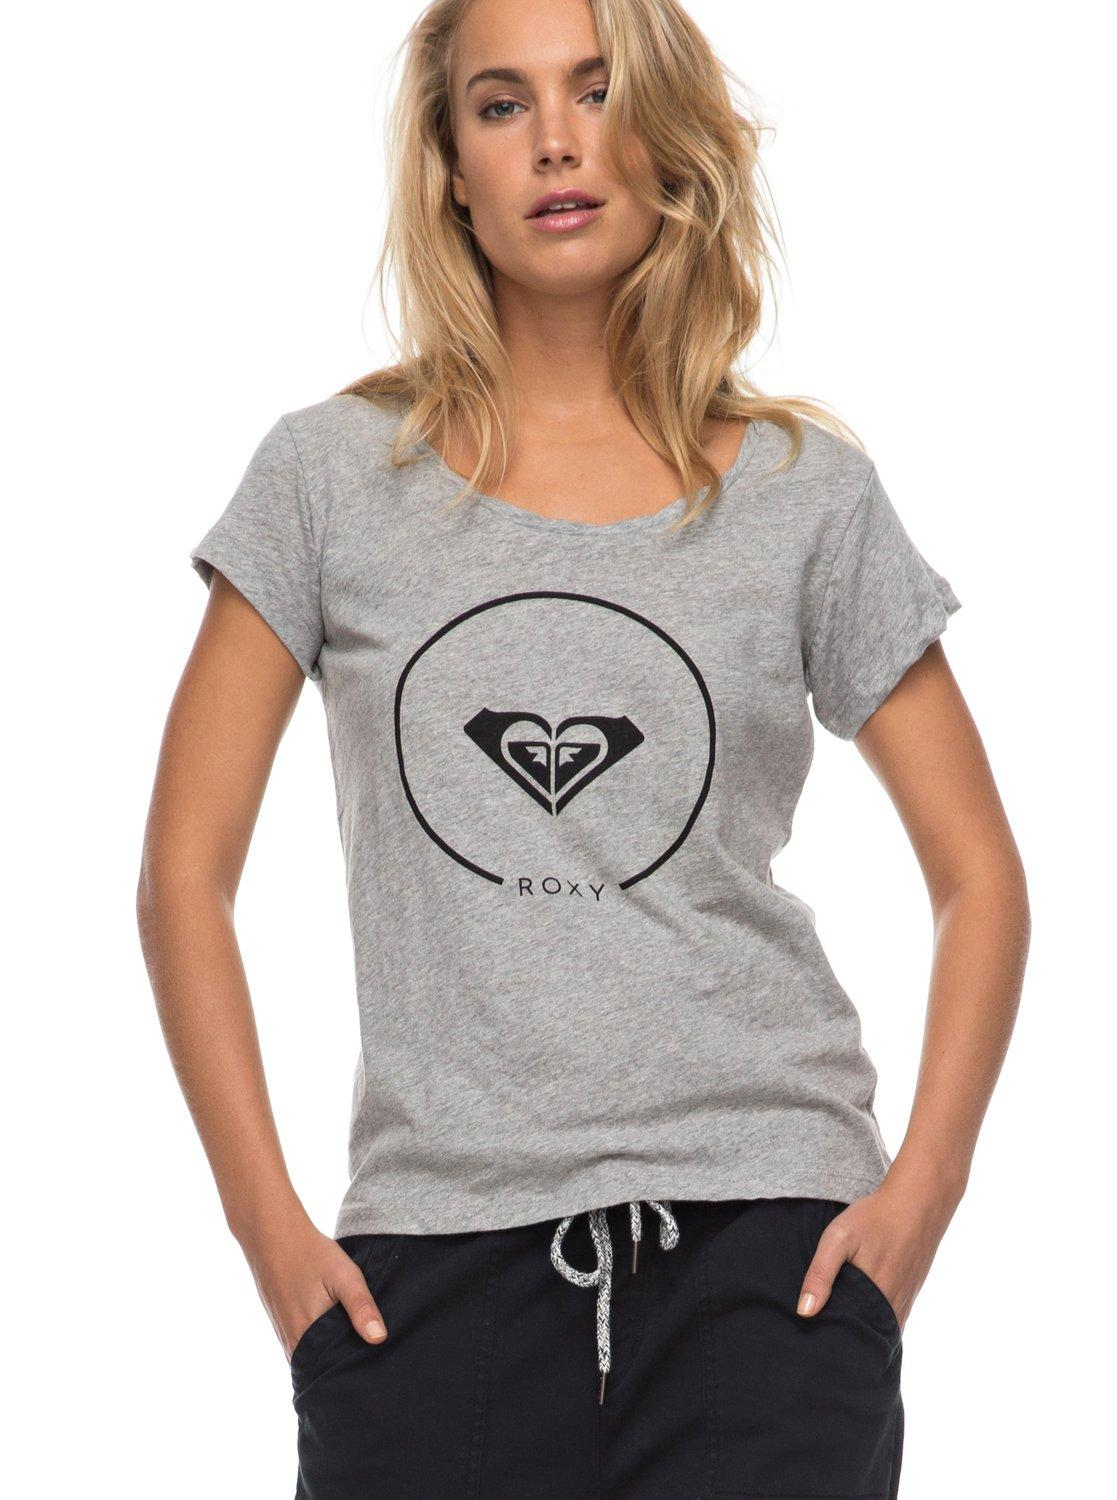 06a55b8bed5298 Roxy Womens Bobby Twist Heritage Heather T-Shirt: M - £12.59 - in stock at  Tallington Lakes Pro Shop